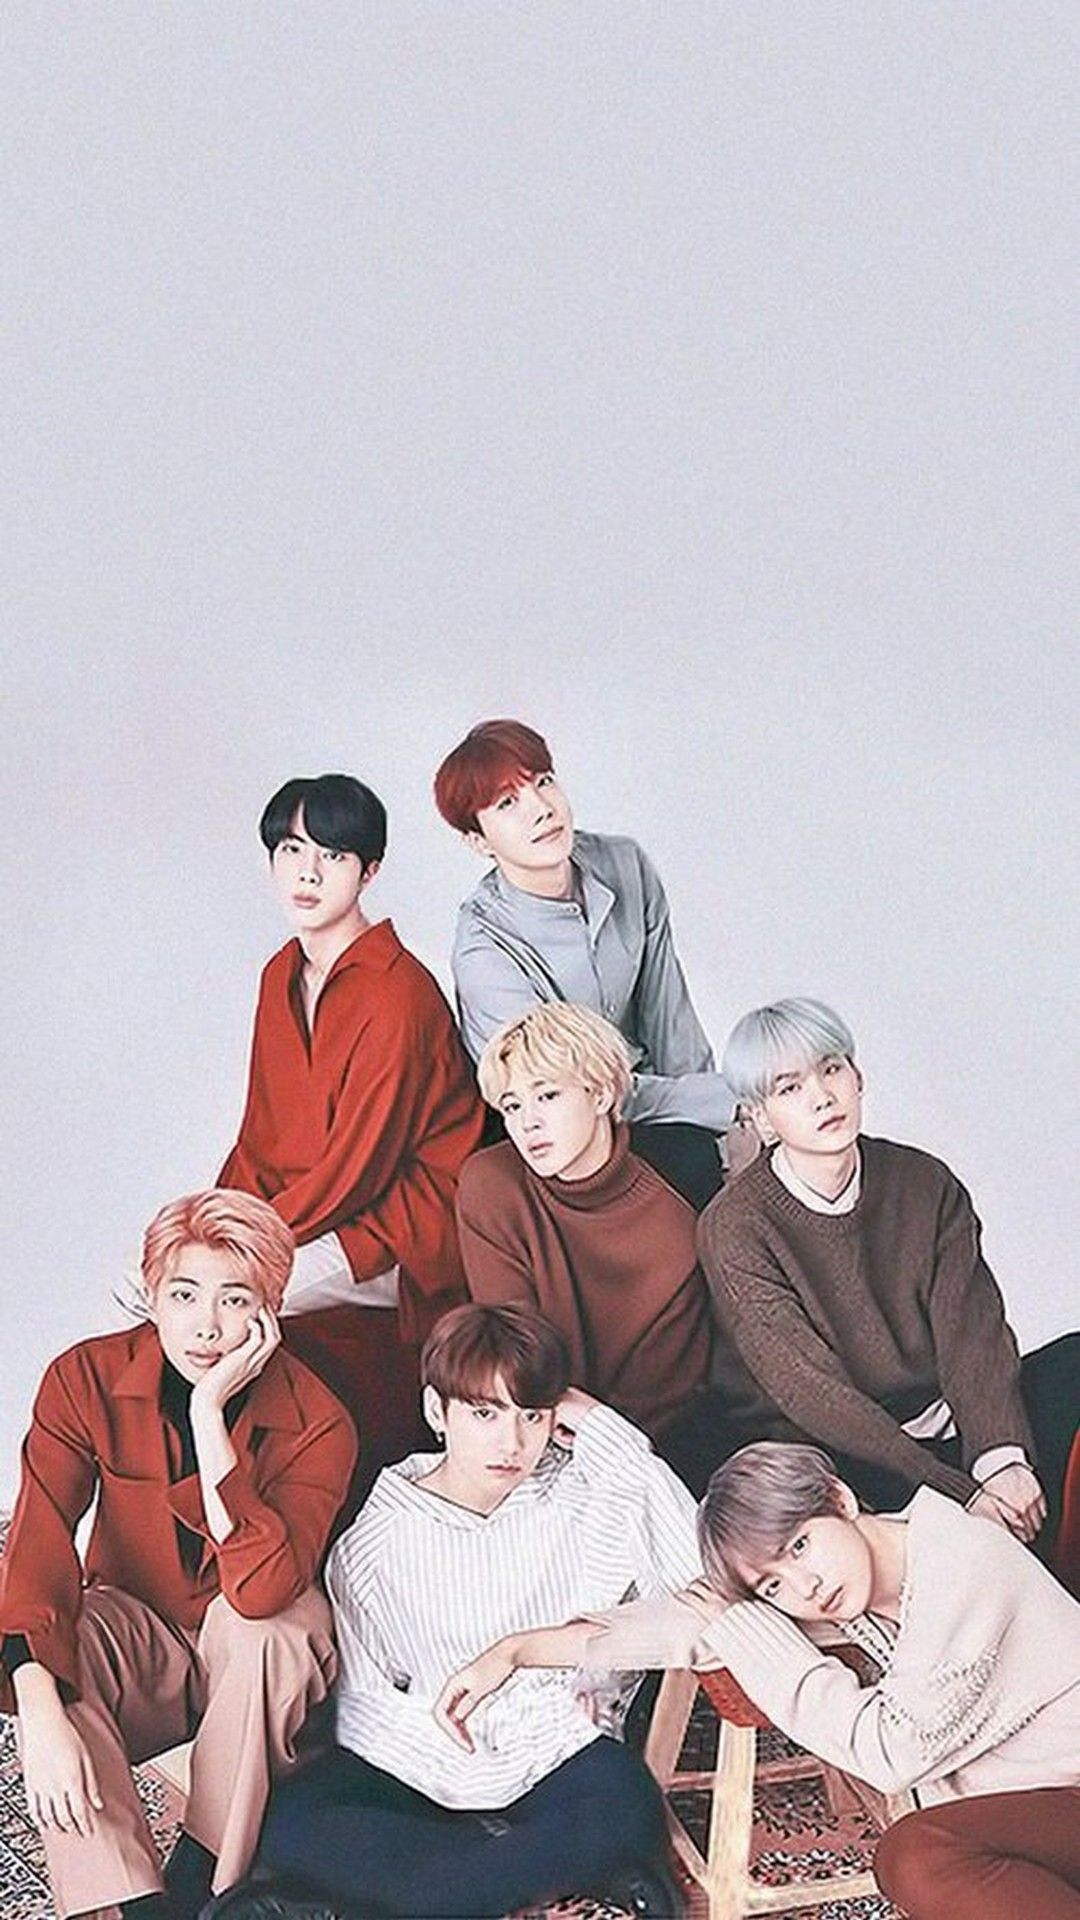 Mobile Wallpapers Bts Best Wallpaper Hd Cute Wallpapers Bts Wallpaper Mobile Wallpaper